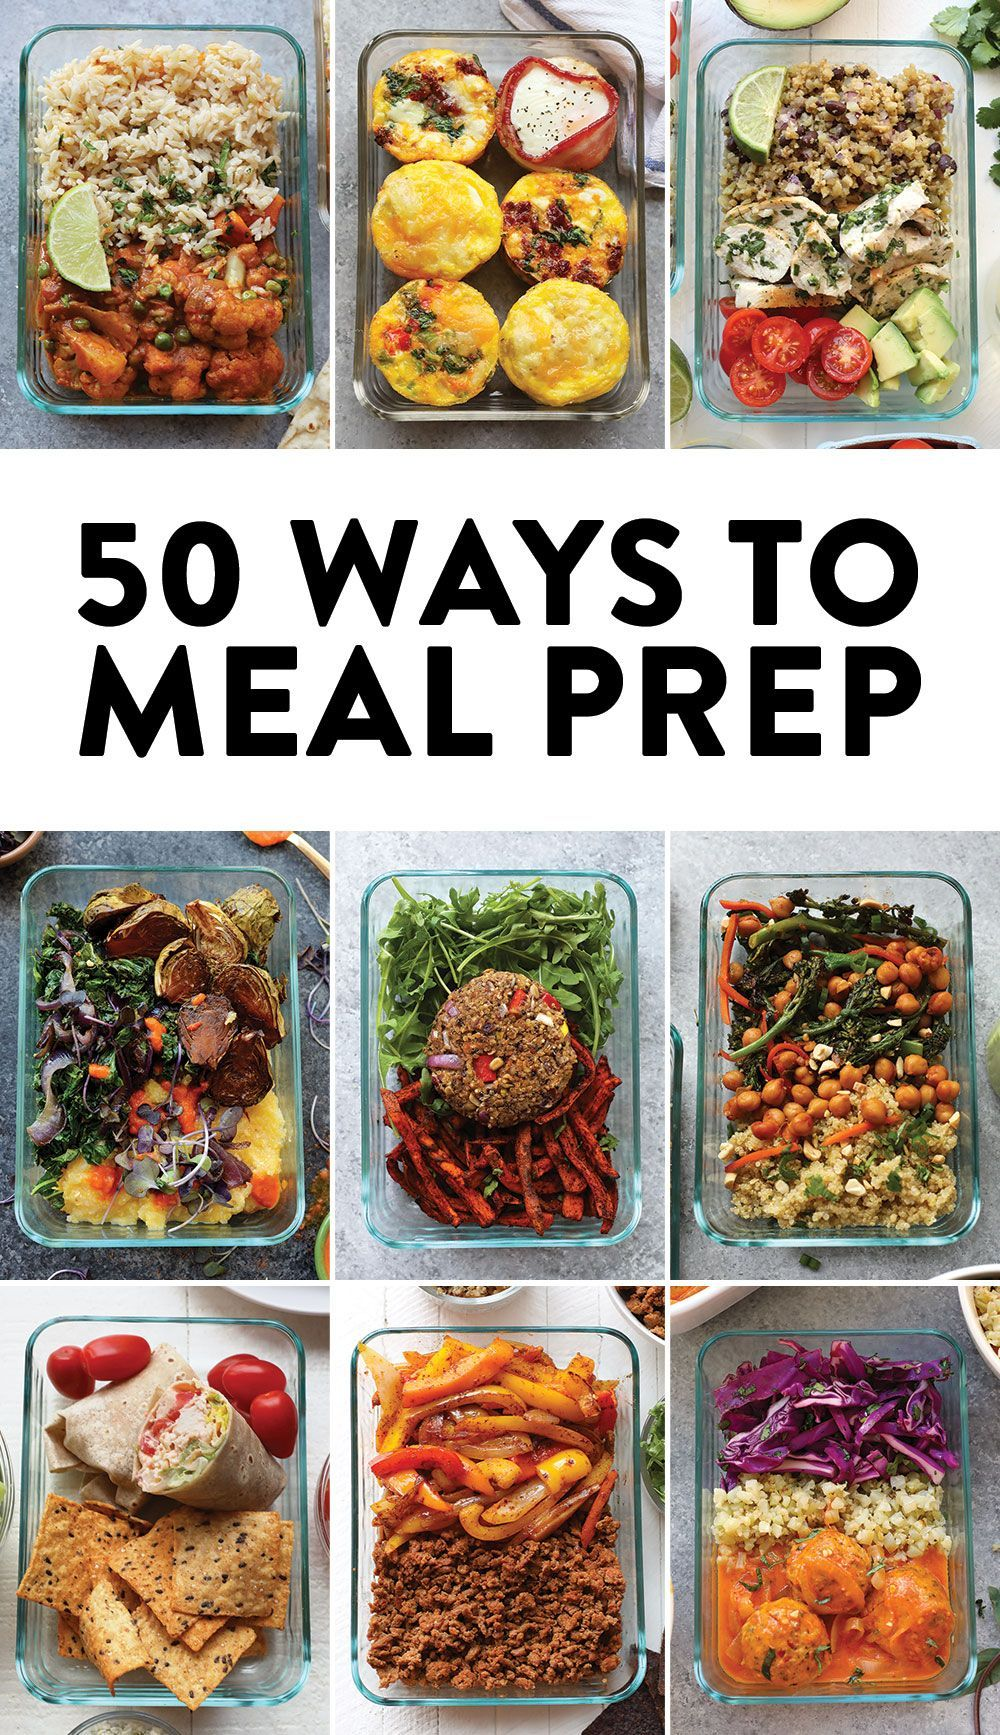 It's HERE! Our annual BEST MEAL PREP RECIPES TO MAKE round-up! We've pulled our top Fit Foodie Finds meal-prep recipes so that you can add these wonderful, healthy meals to your lineup in 2018! HERE! Our annual BEST MEAL PREP RECIPES TO MAKE round-up! We've pulled our top Fit Foodie Finds meal-prep recipes so that you can add these wonderful, healthy meals to your lineup in 2018!